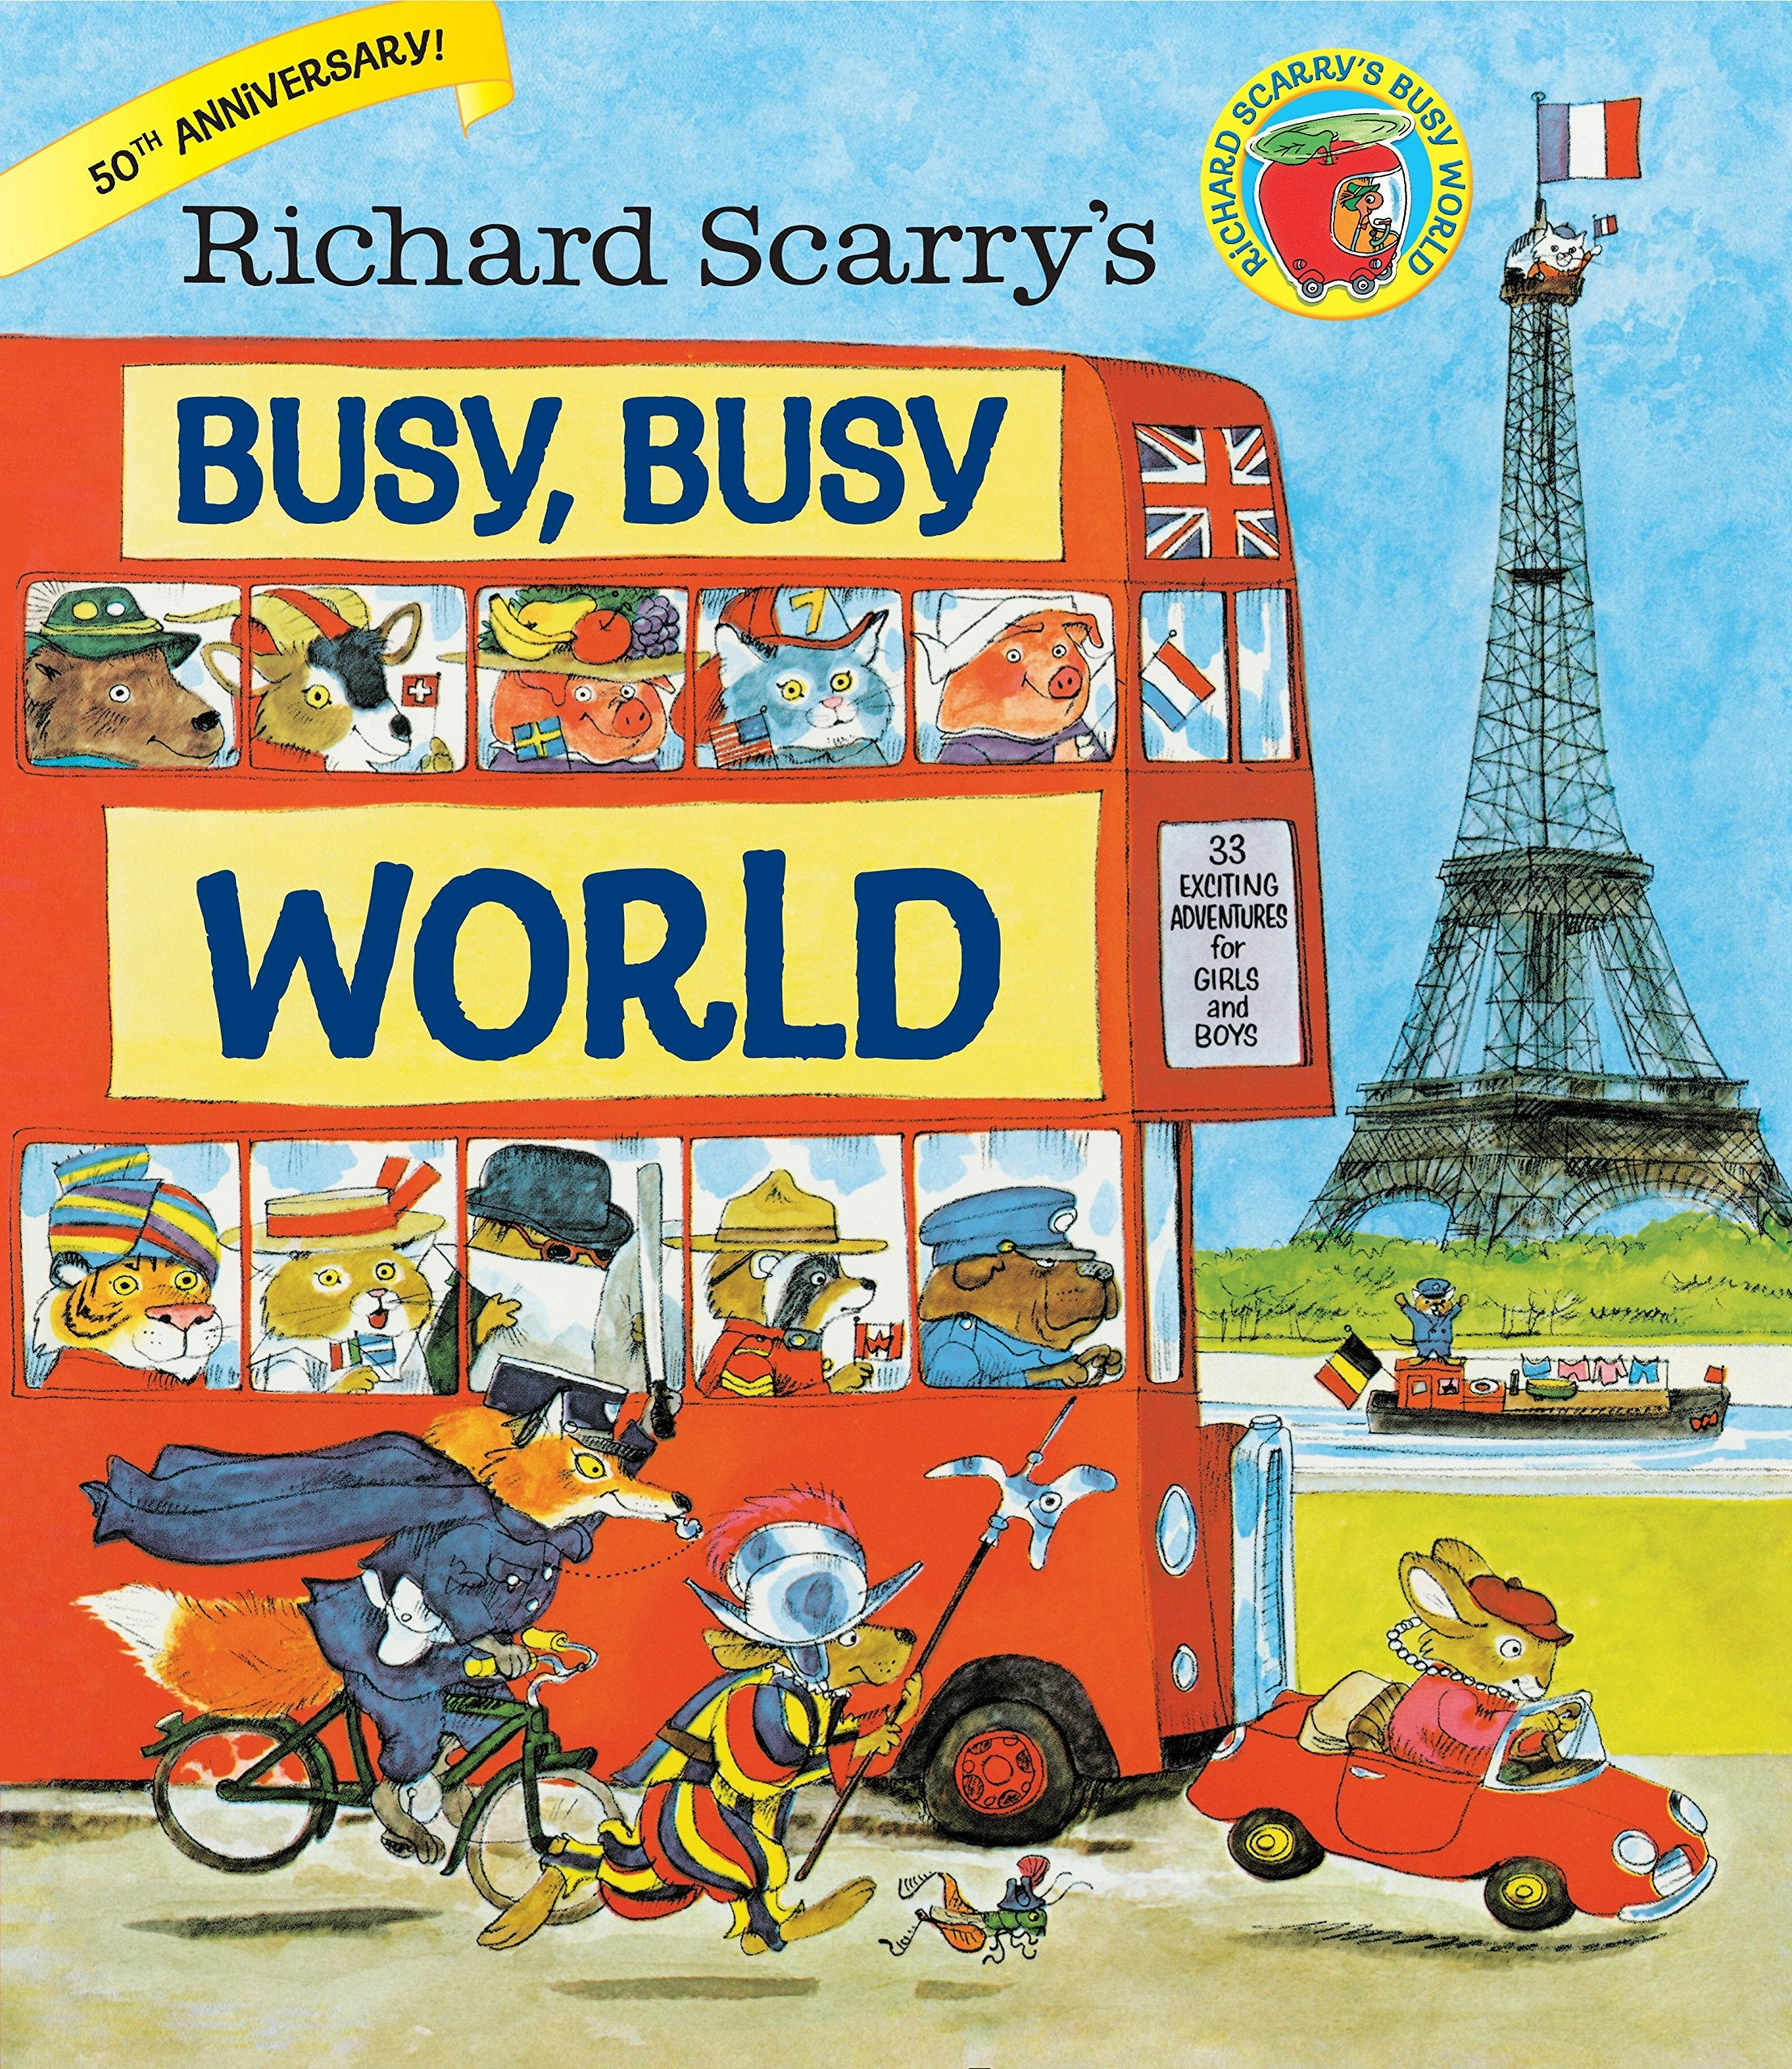 Richard Scarry's Busy, Busy World Book